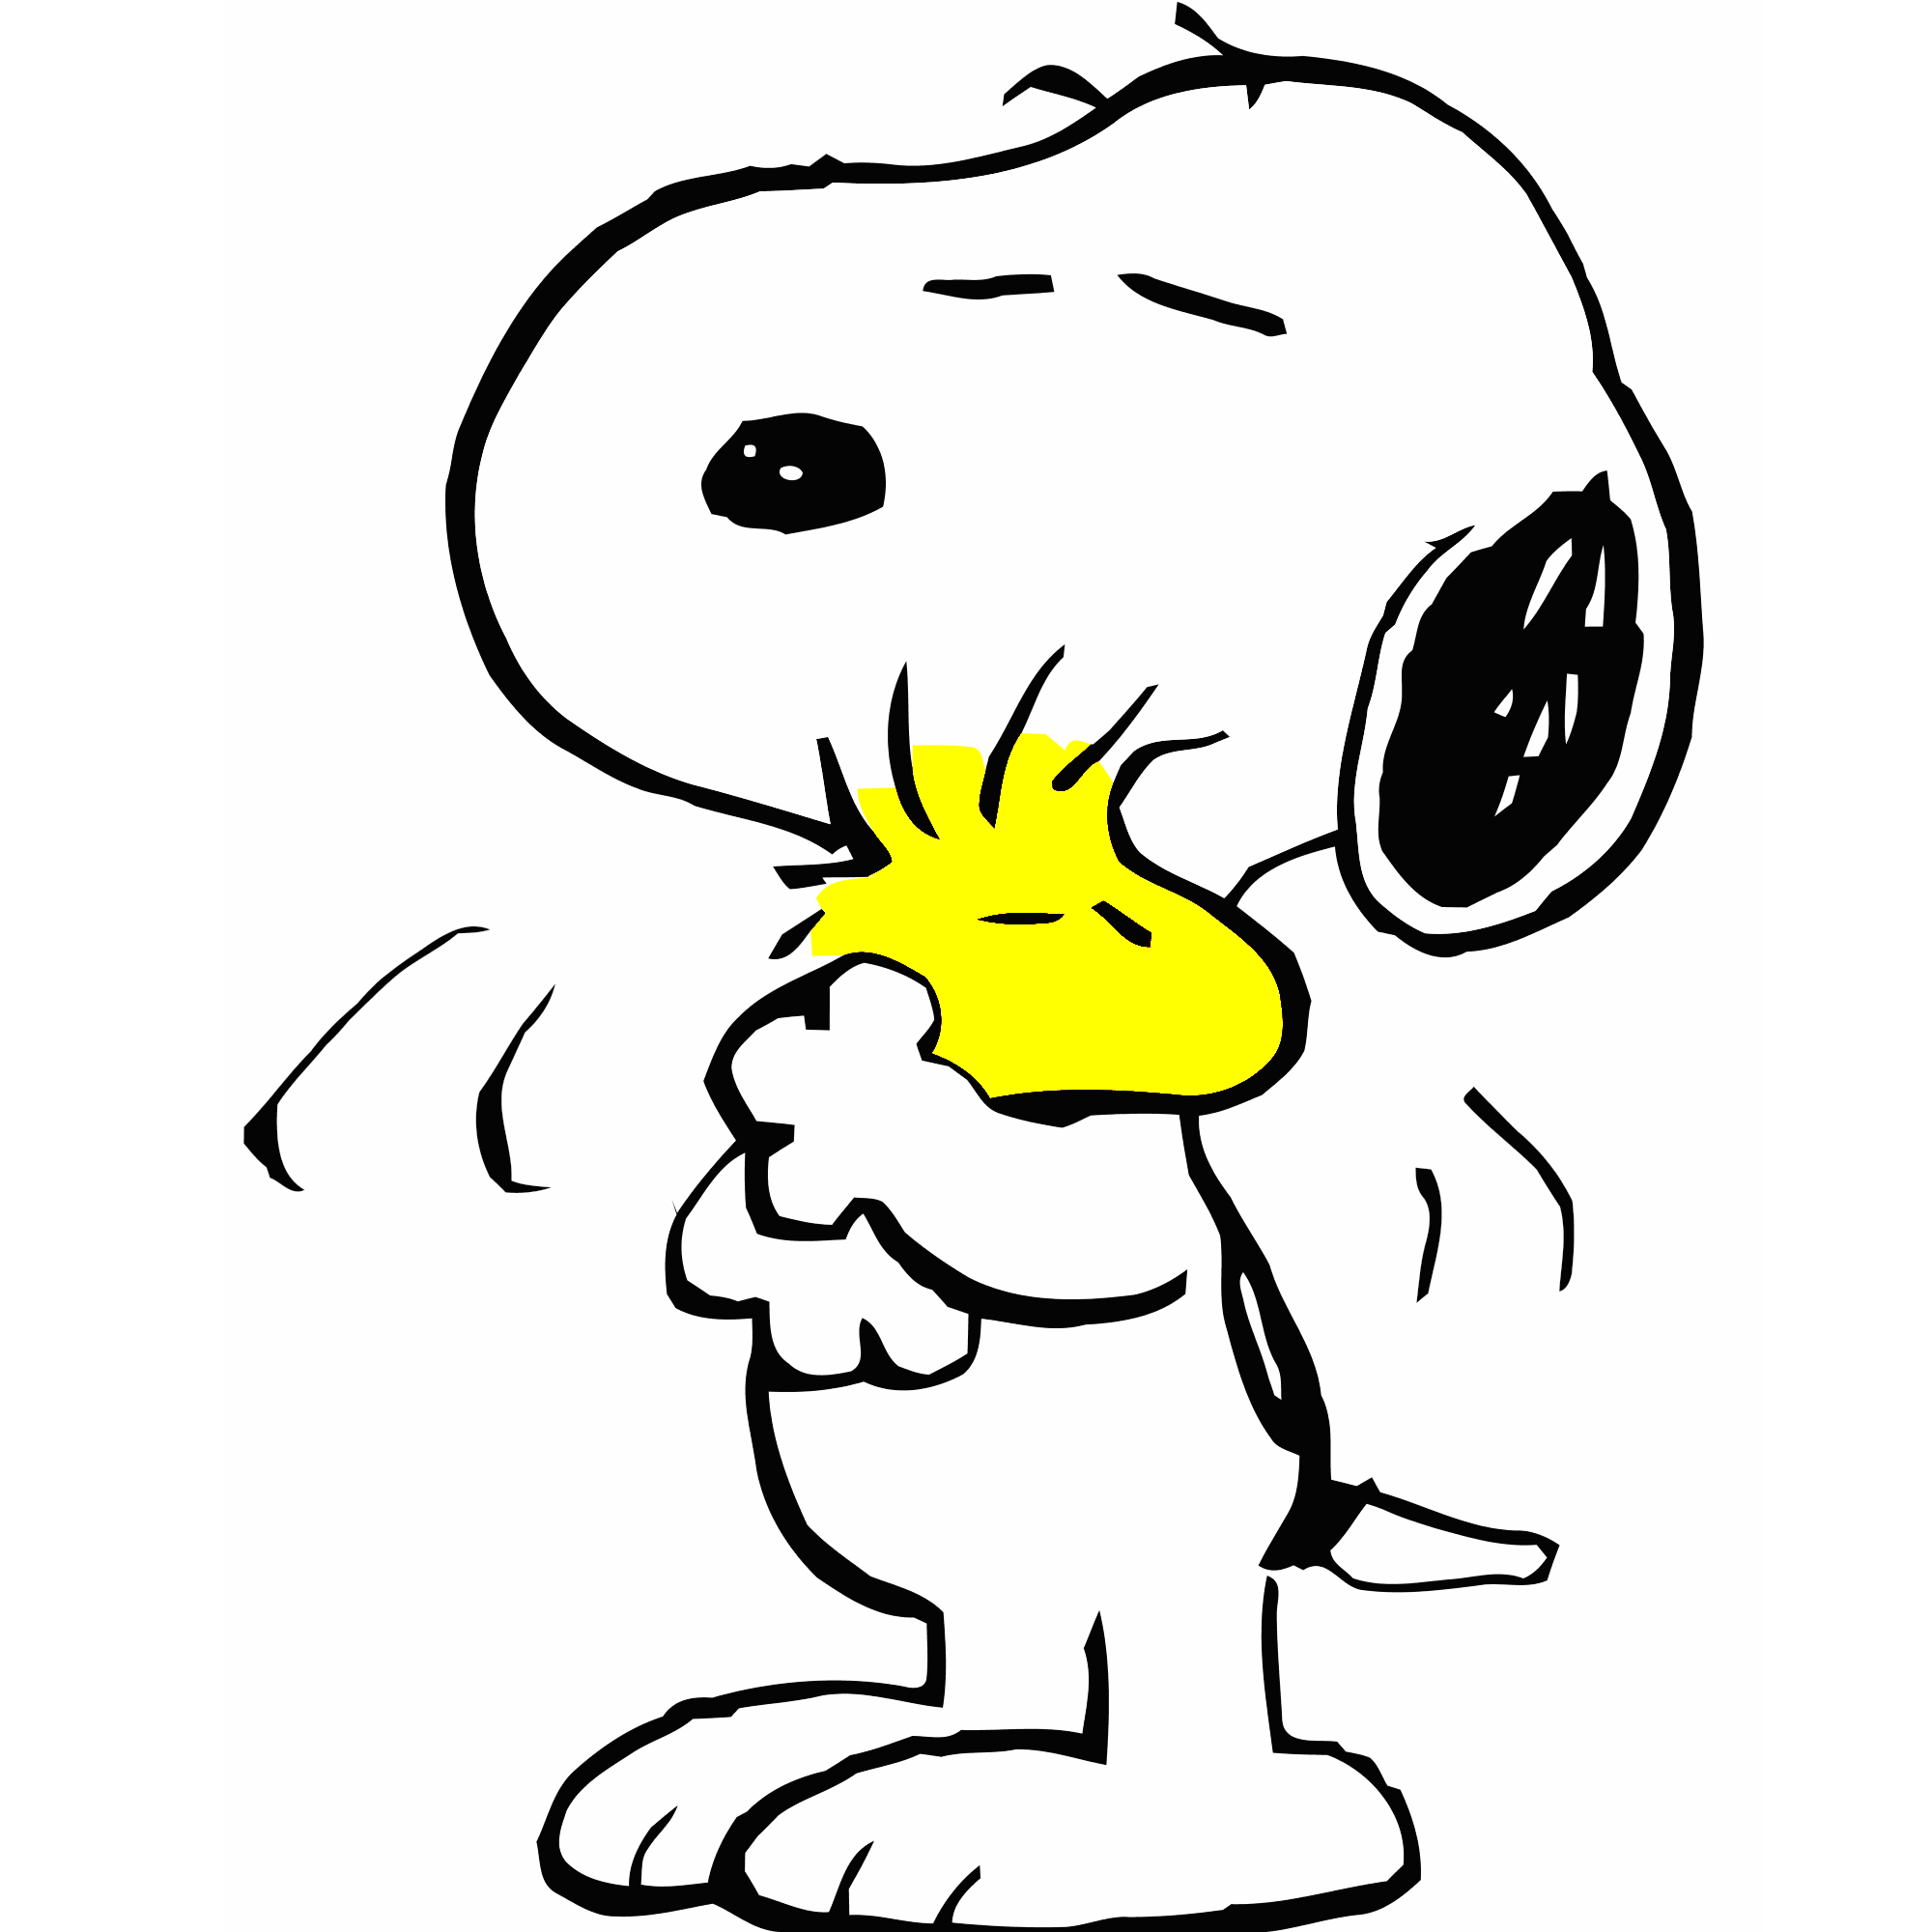 Snoopy Desenho Png Picture 843497 Snoopy Desenho Png